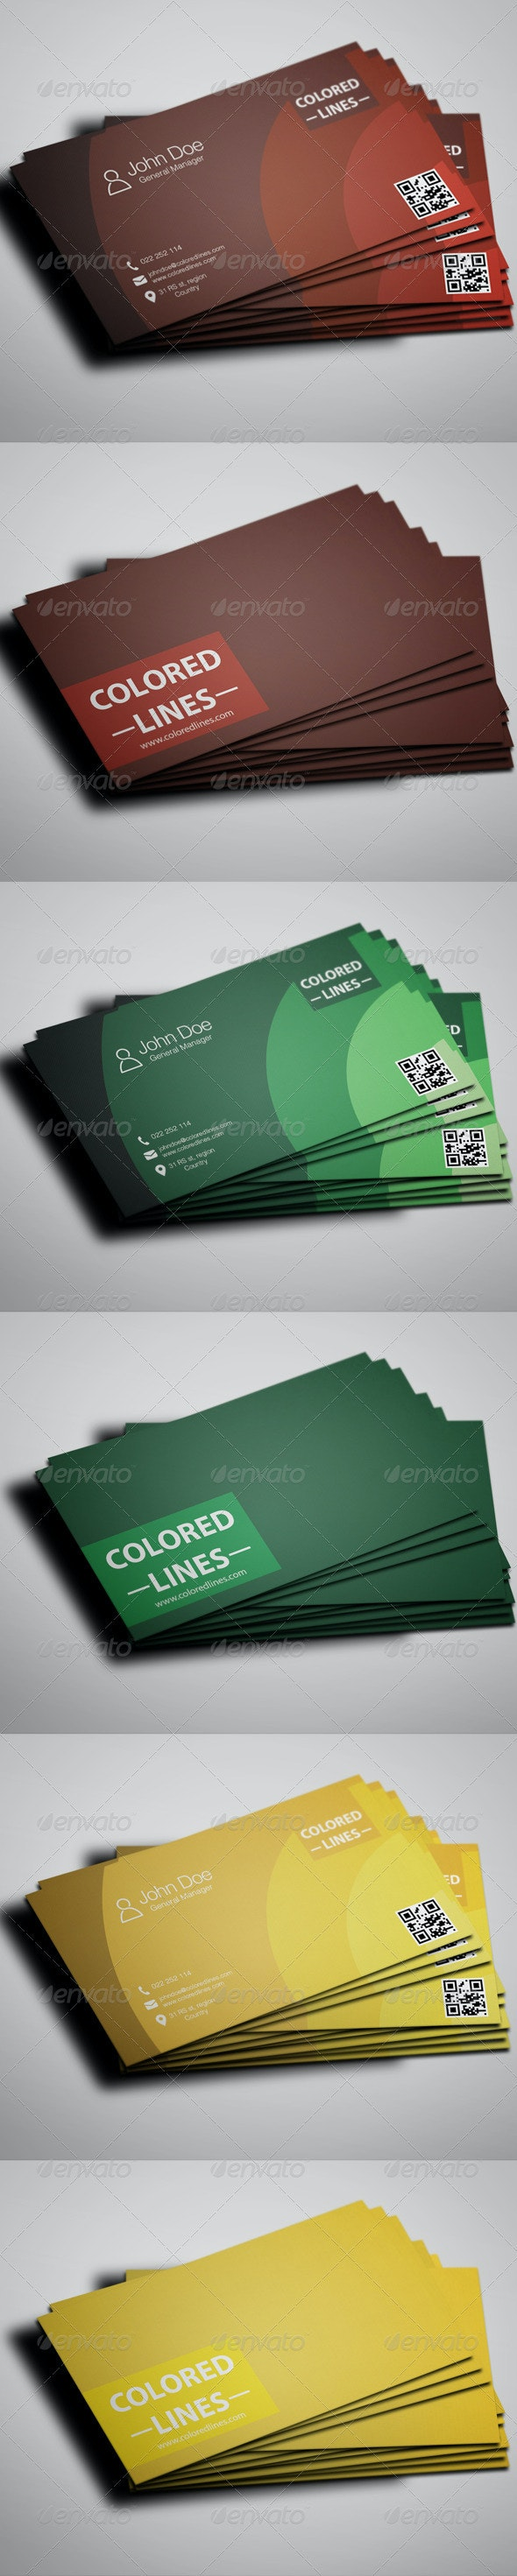 Colored Business Cards Templates - Corporate Business Cards